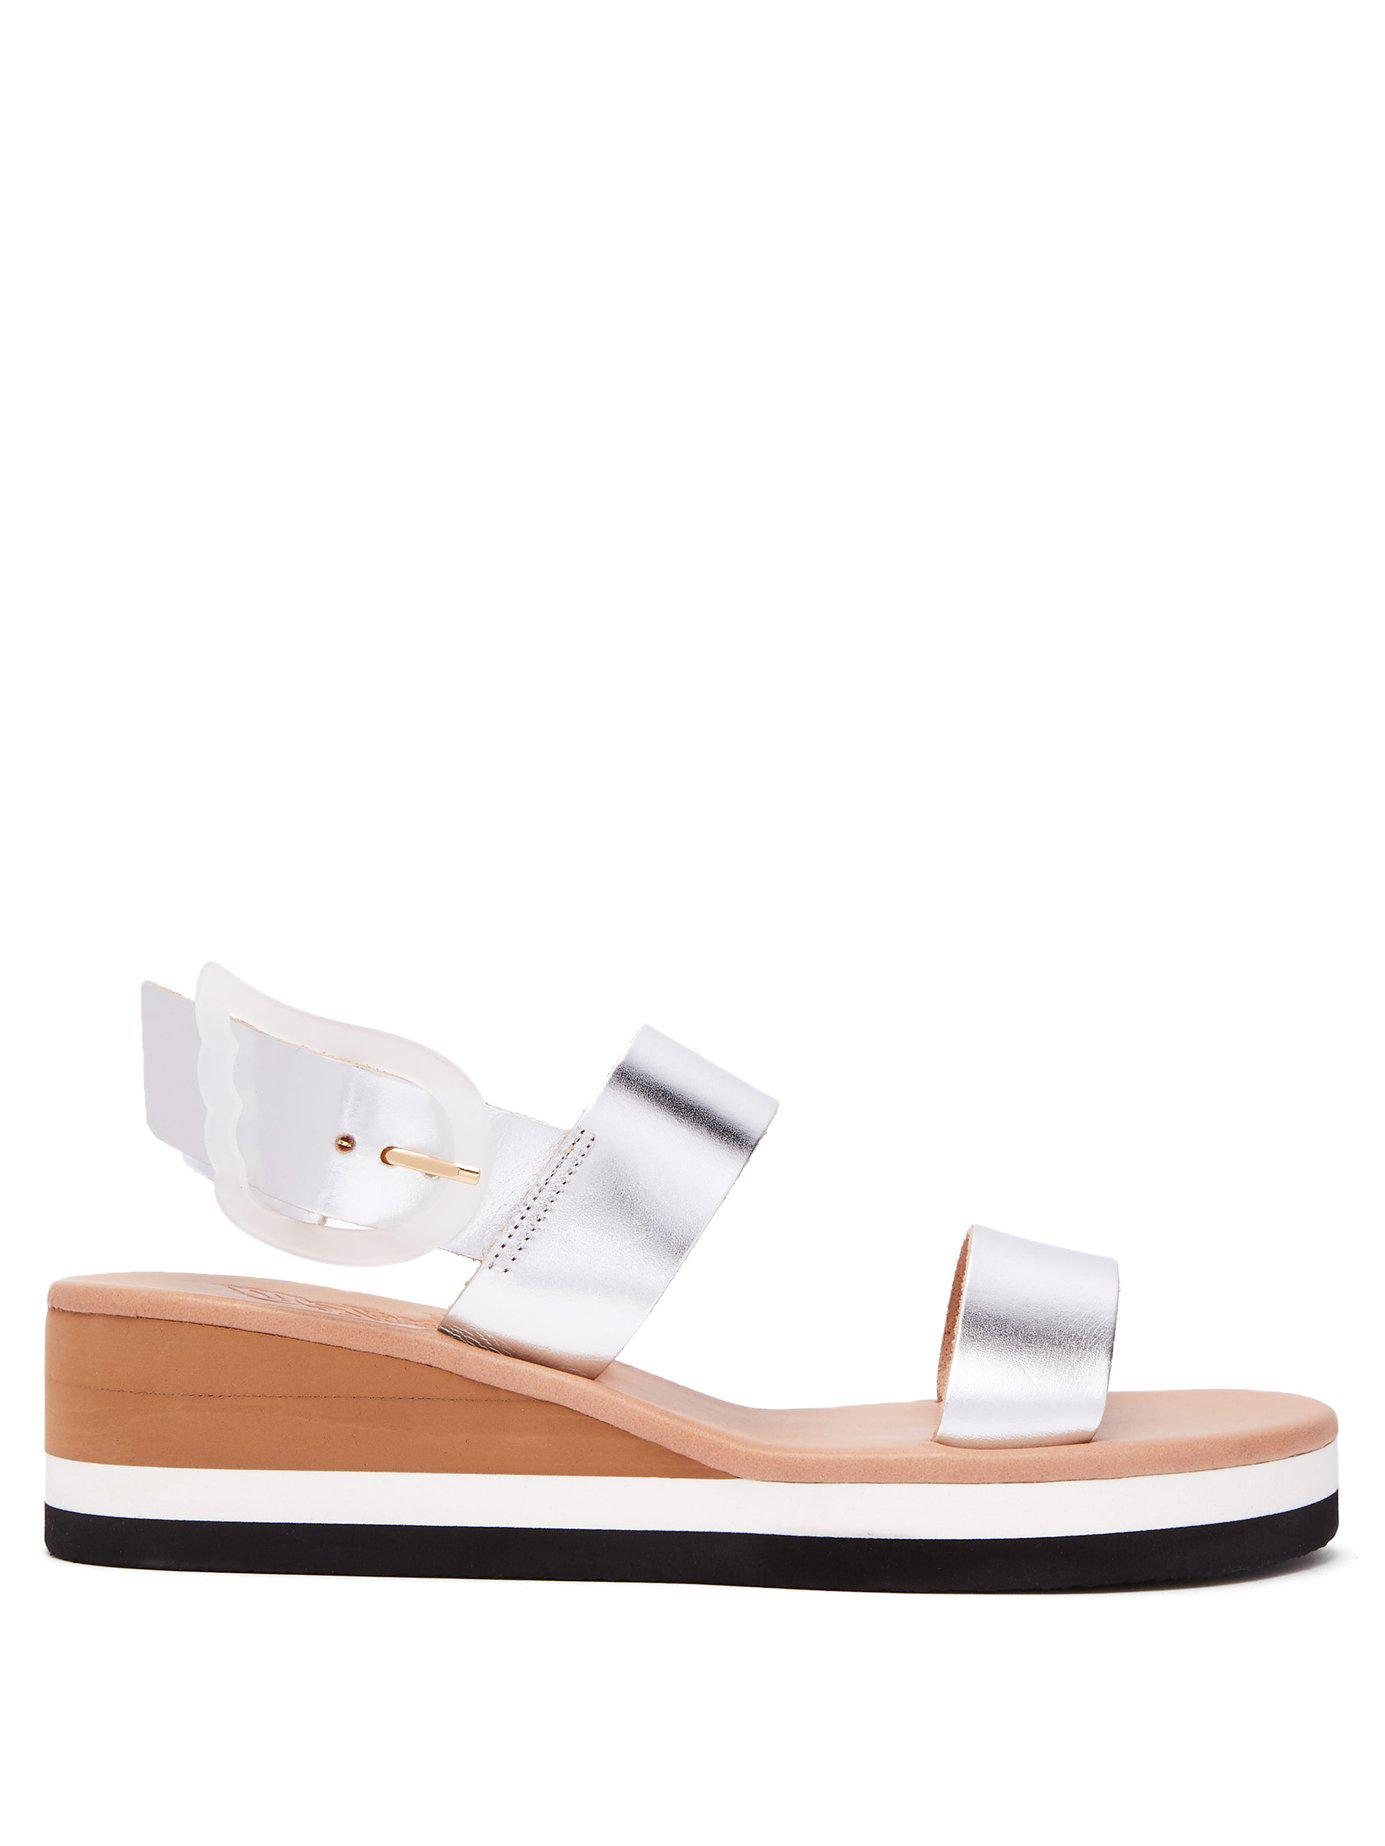 3d3a6ce20af7 Lyst - Ancient Greek Sandals Clio Rainbow Wedge Heel Leather Sandals